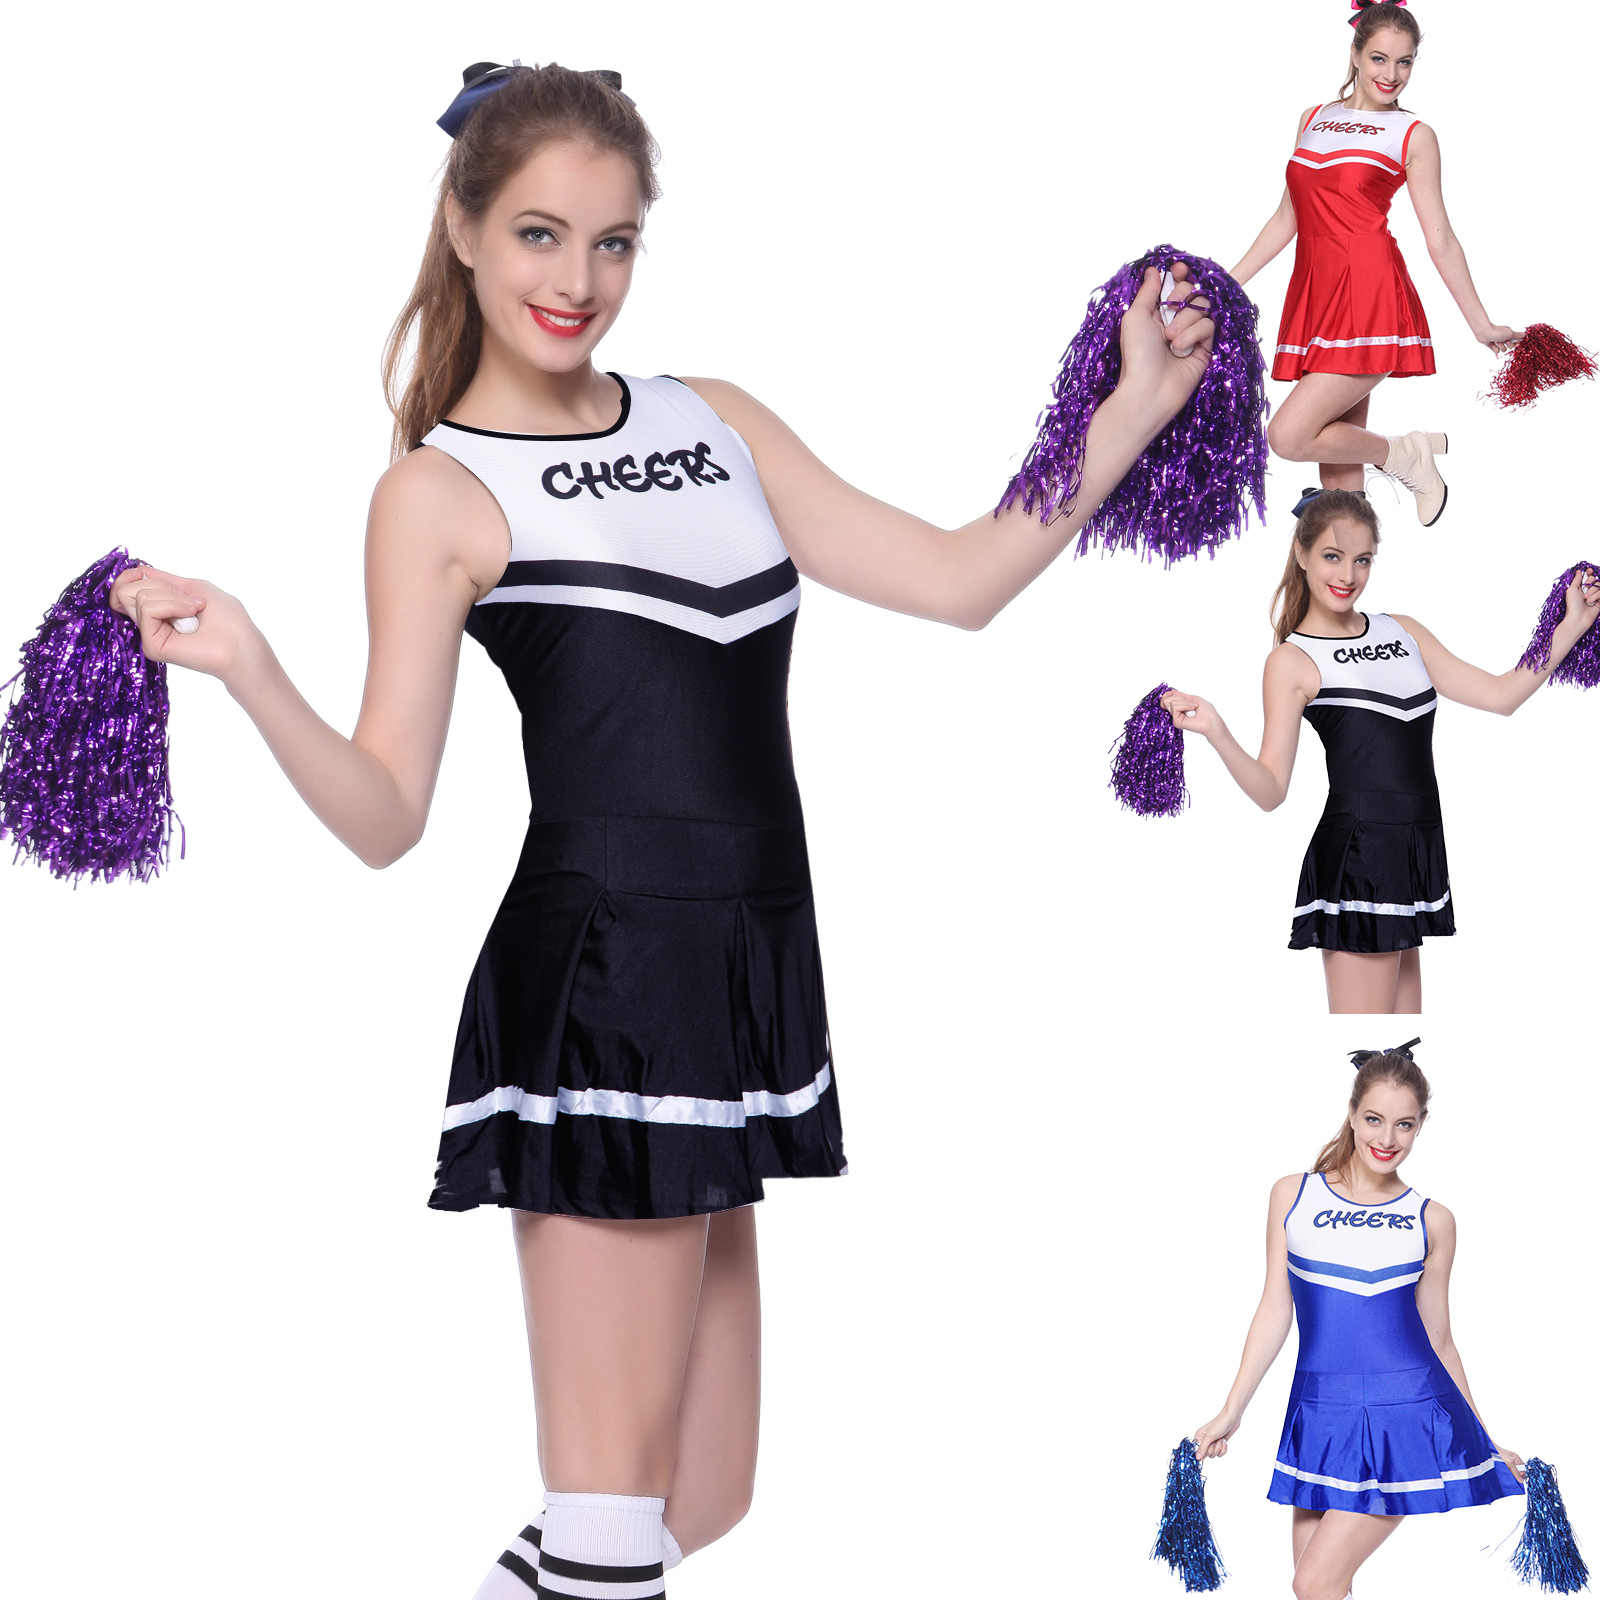 da52b47b317 Details about Ladies High School Cheer Girl Cheerleading Costume Fancy  Dress Outfit with Poms